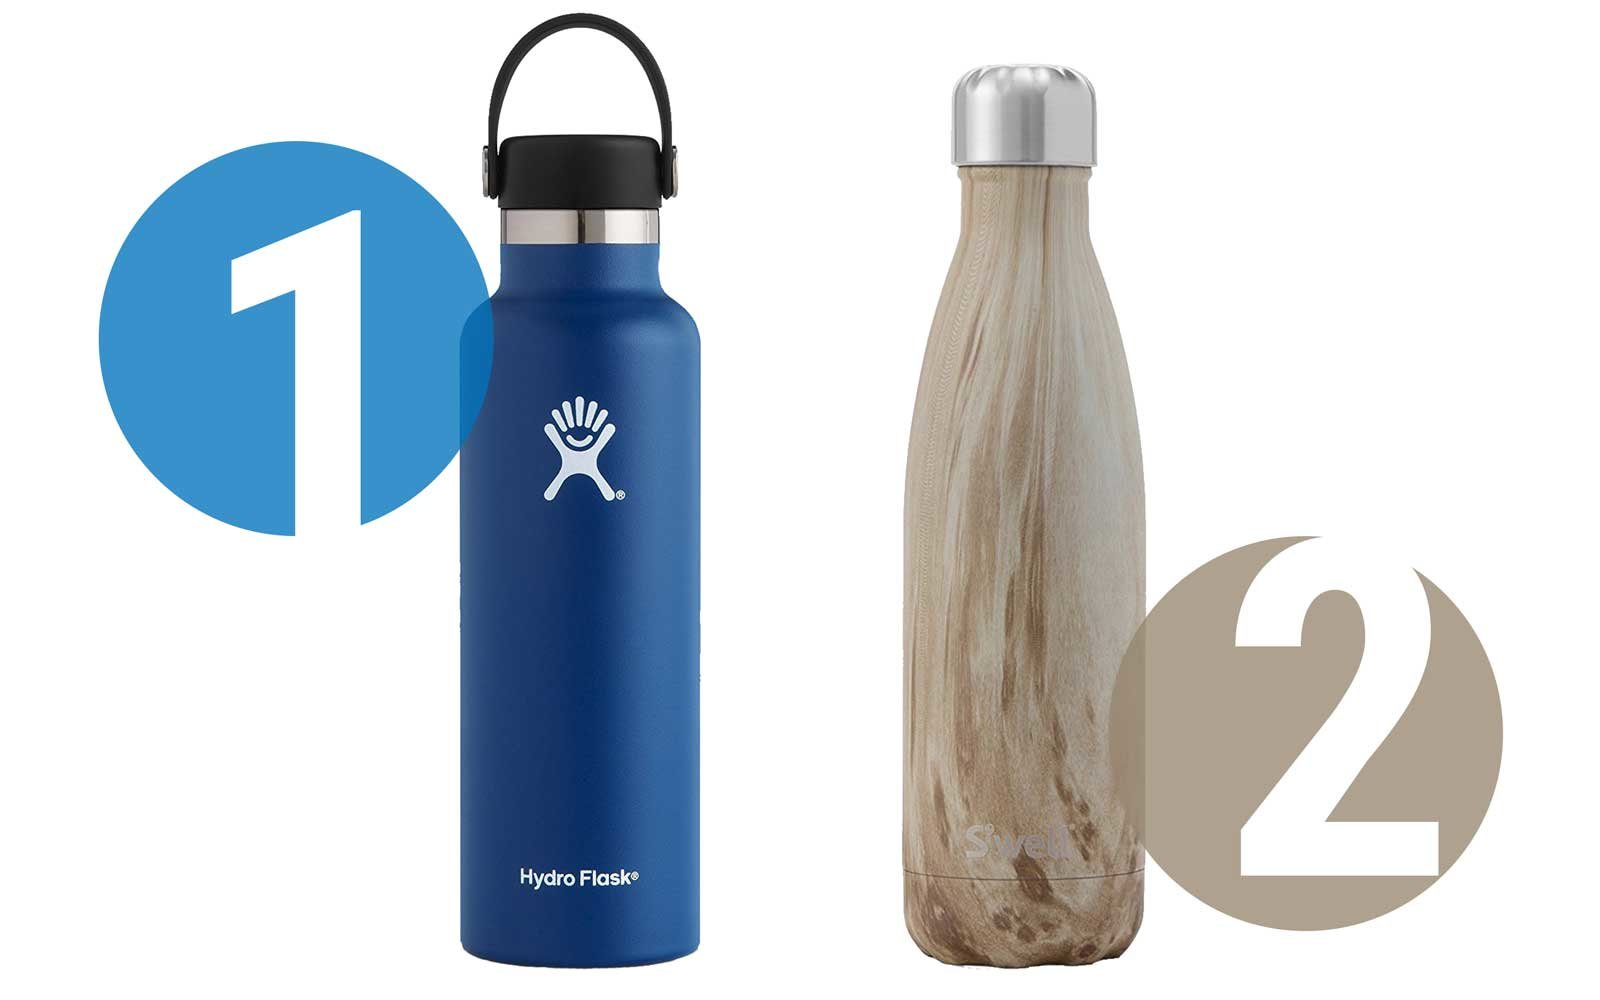 Best Insulated Water Bottle 2019 Best Water Bottles for Travel in 2019 | Travel + Leisure